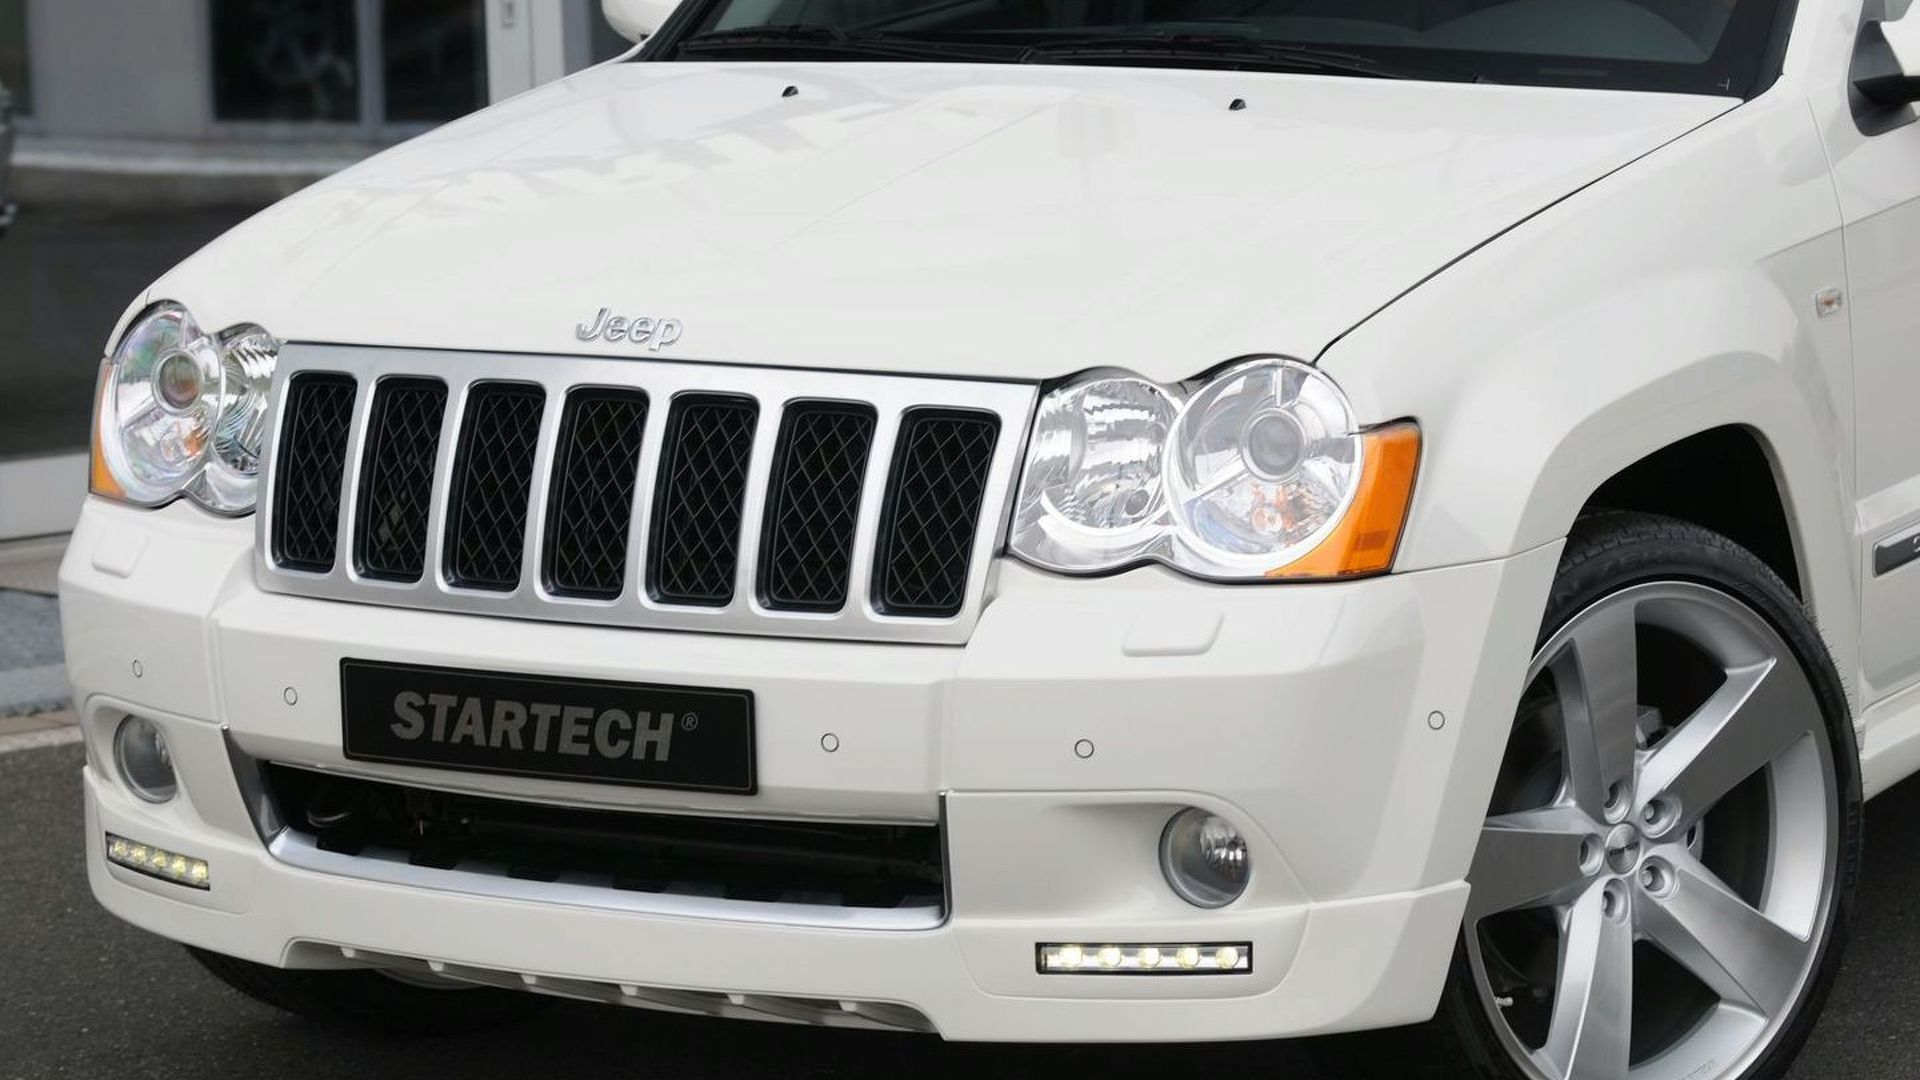 super summit approved the overland jeep sandy storm grand cherokee